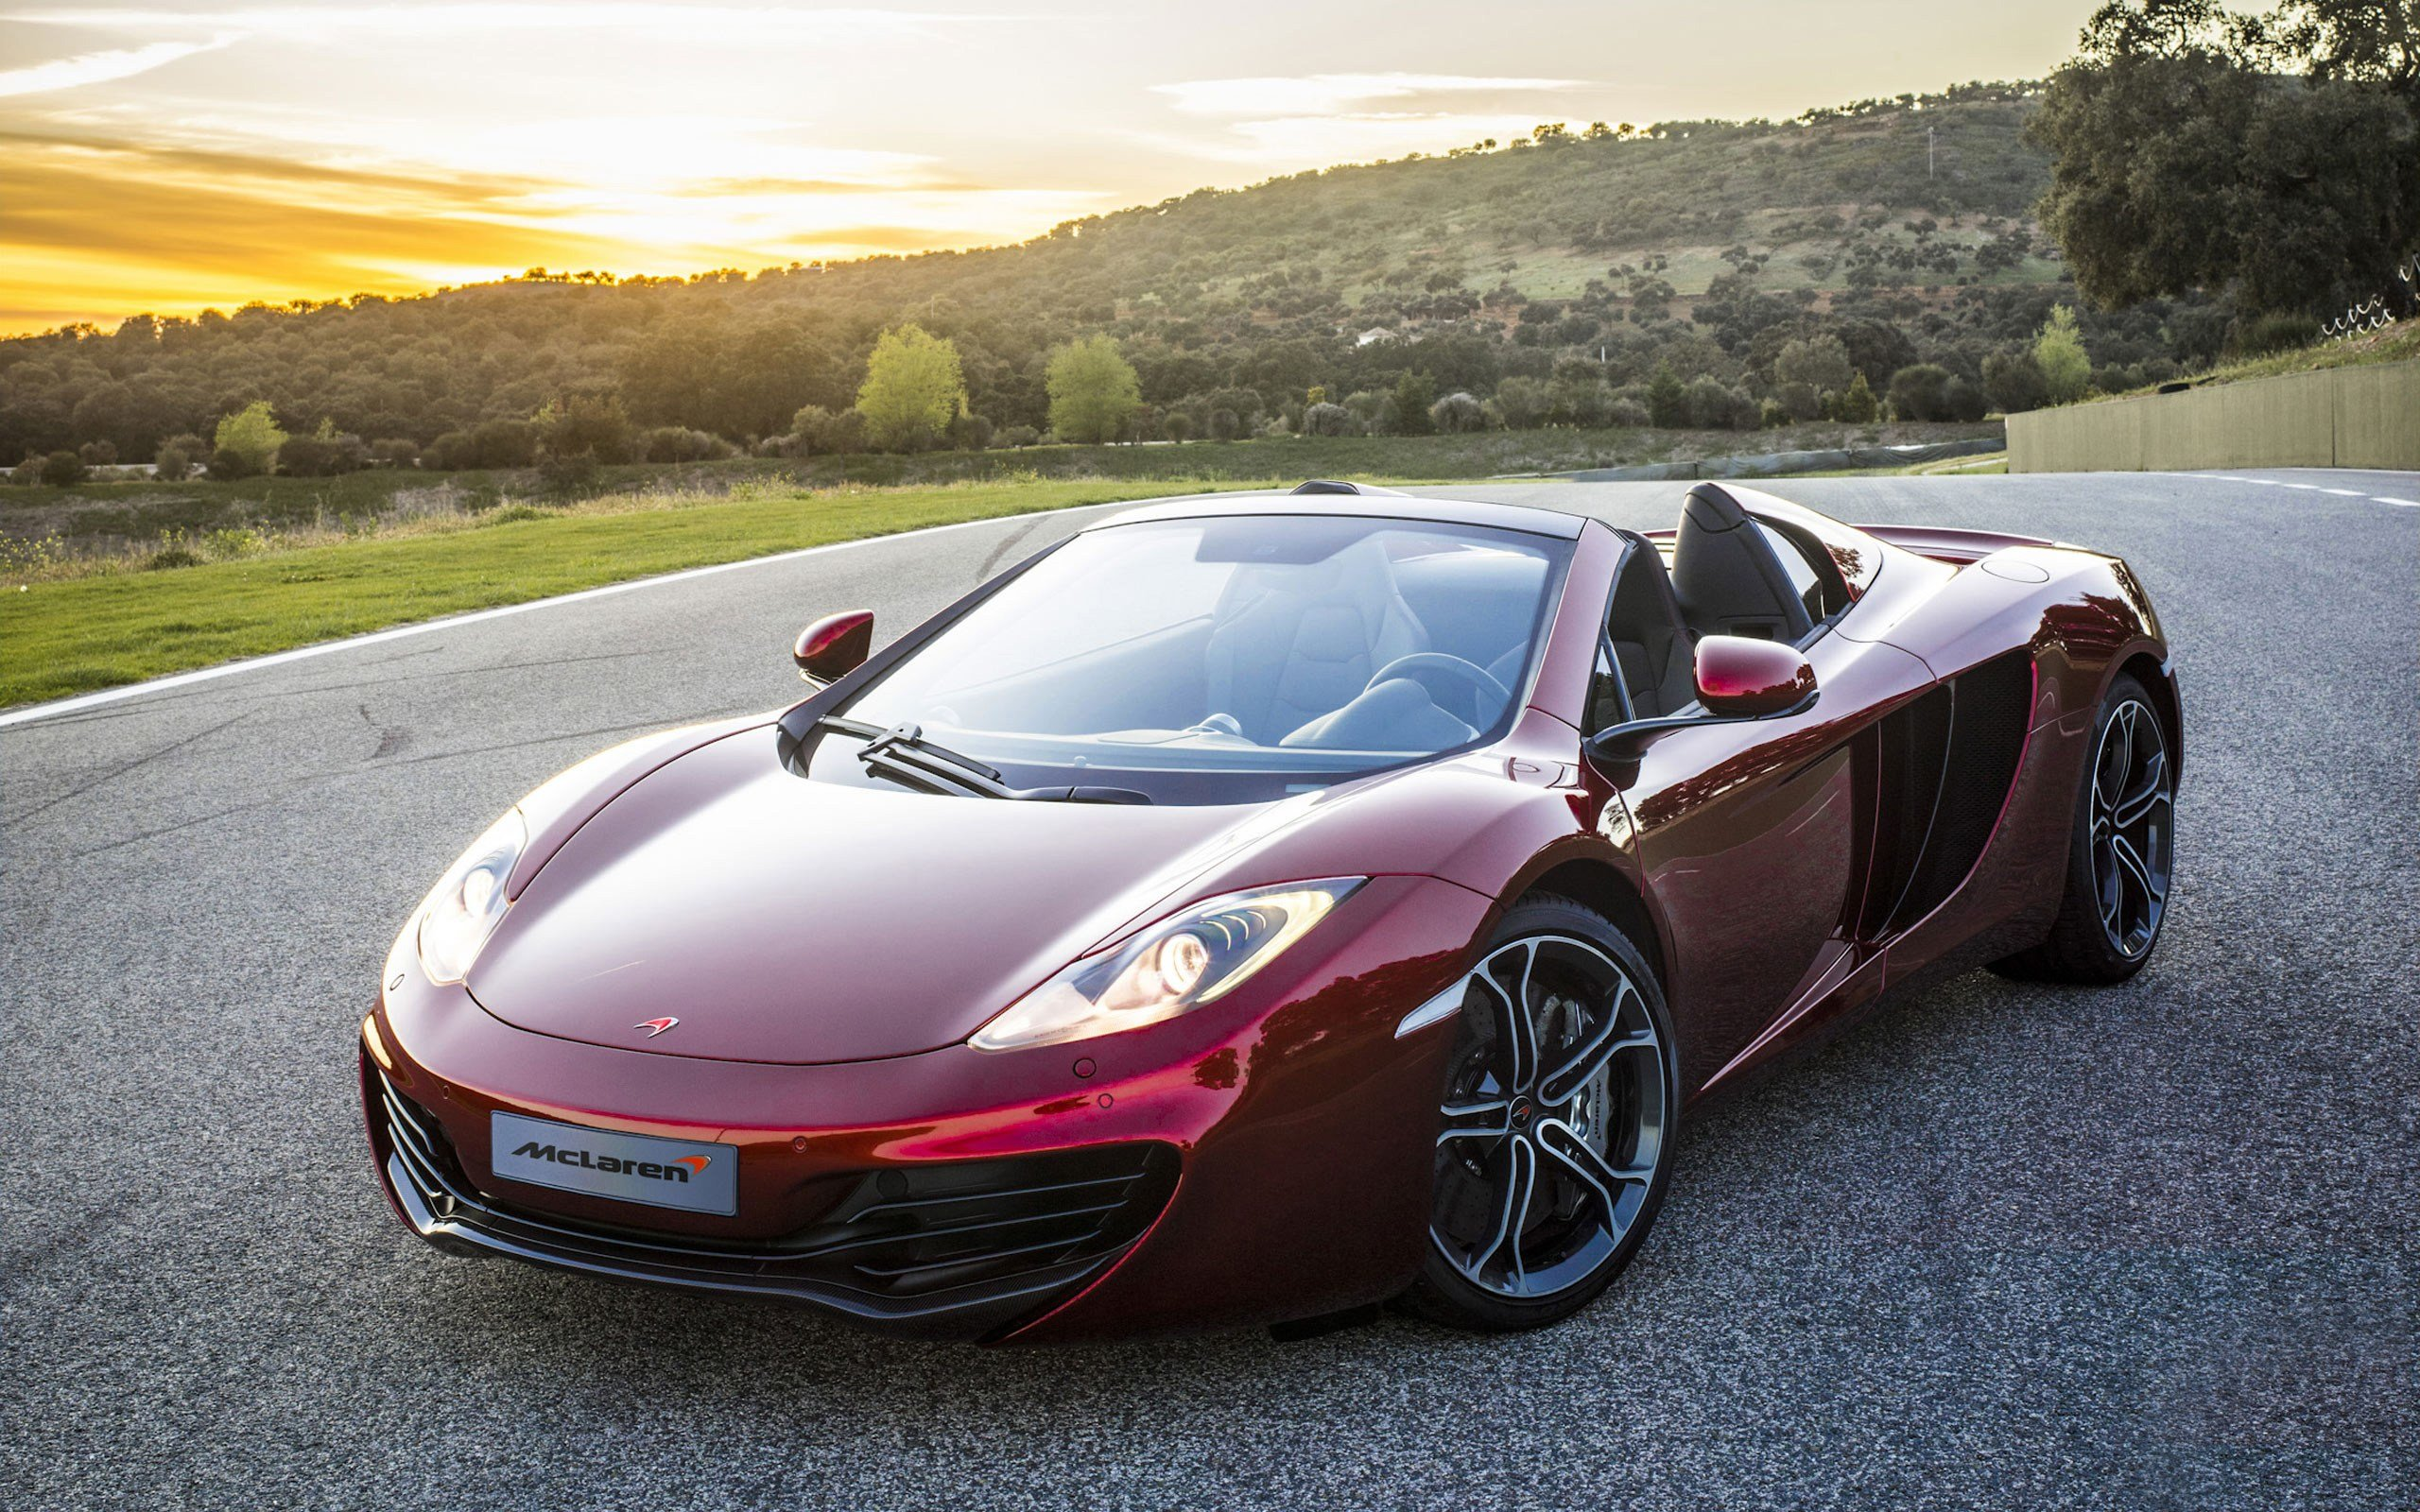 Latest 2012 Mclaren Mp4 12C Spider Wallpaper Hd Car Wallpapers Free Download